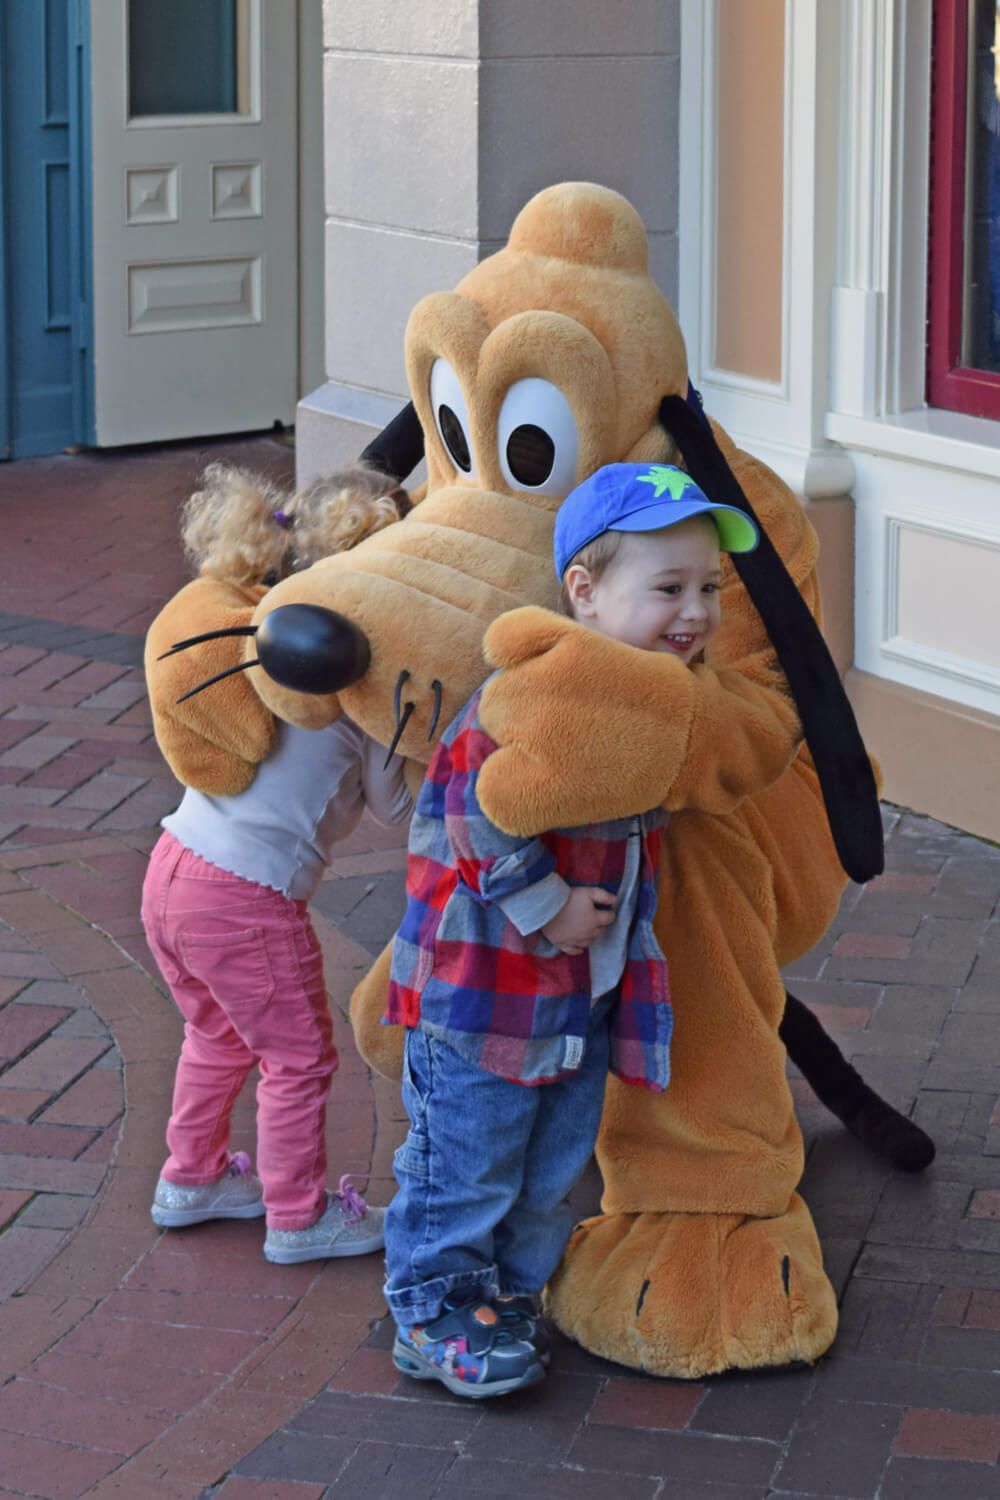 Easy-Does-It Tips to Help a Child Afraid of Disney Characters - Pluto